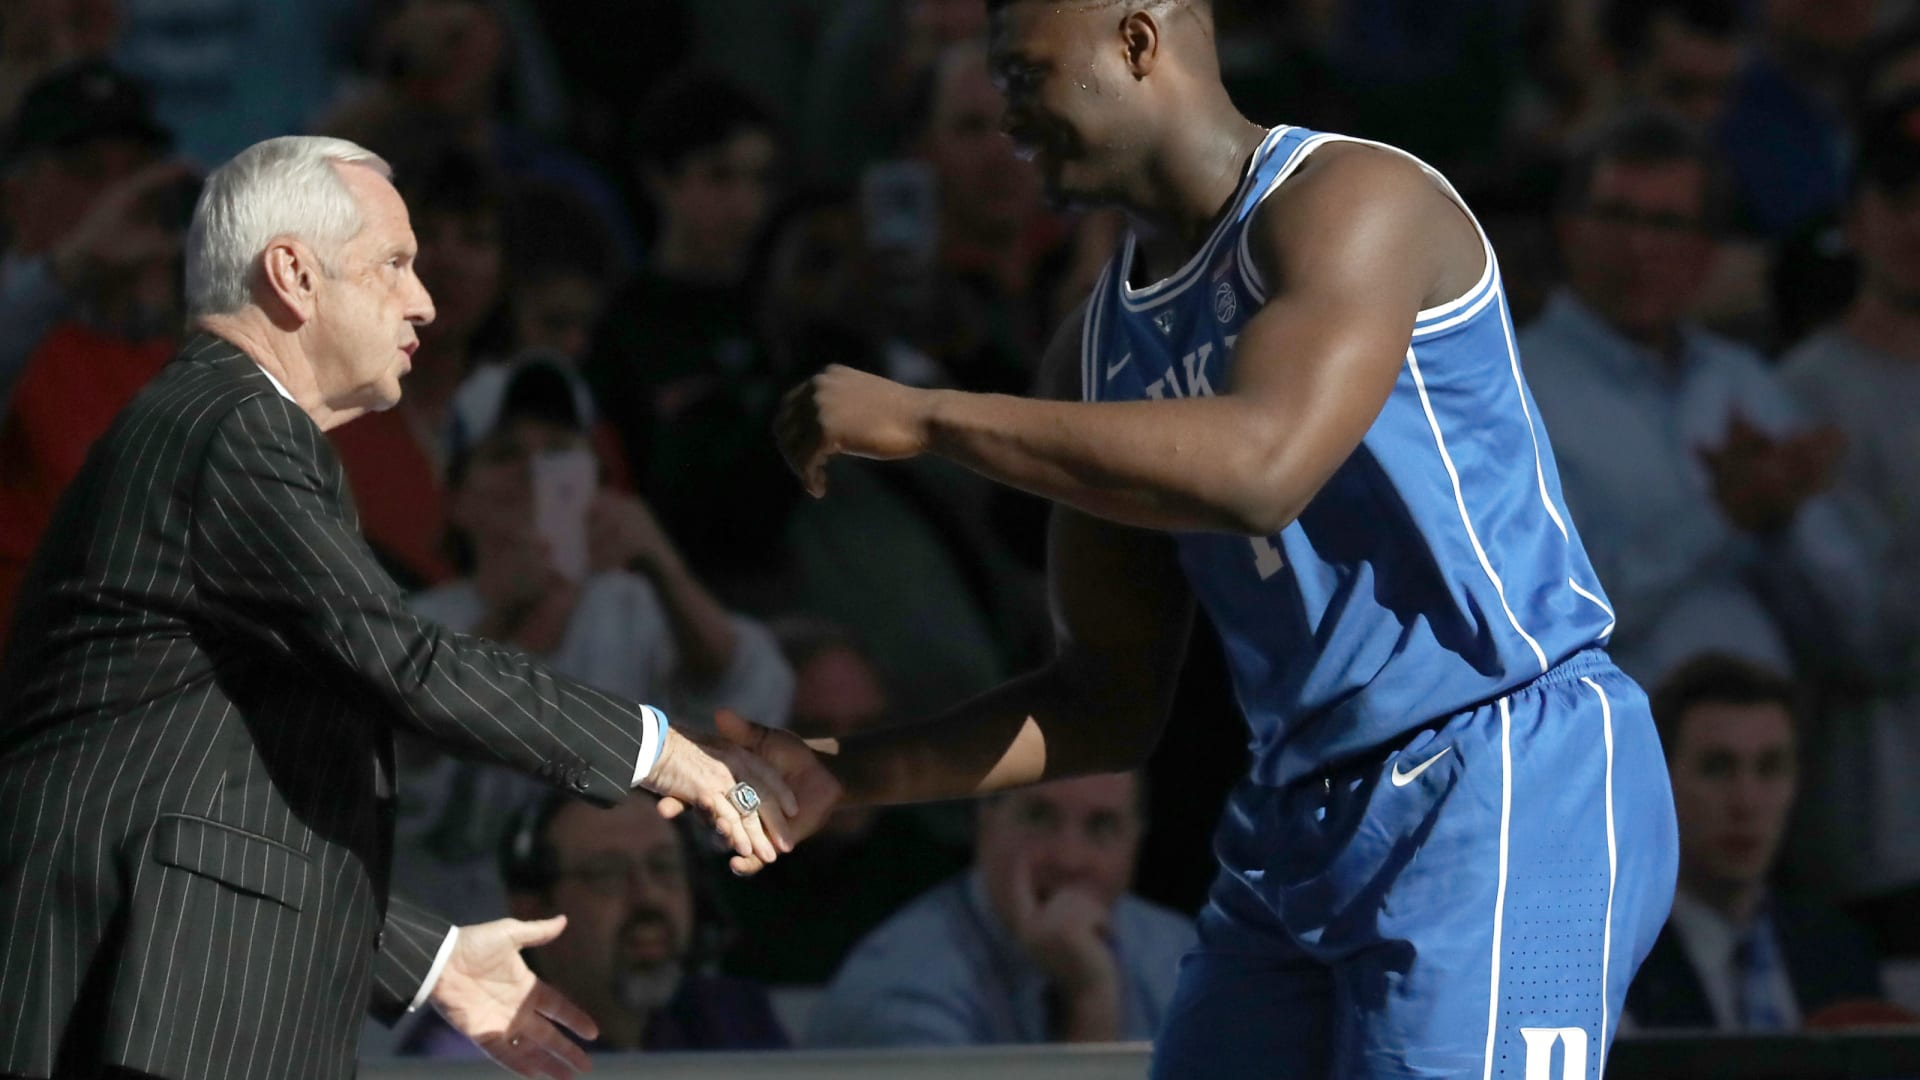 Duke basketball fans agree with Tar Heels: All-time matchup looks lopsided